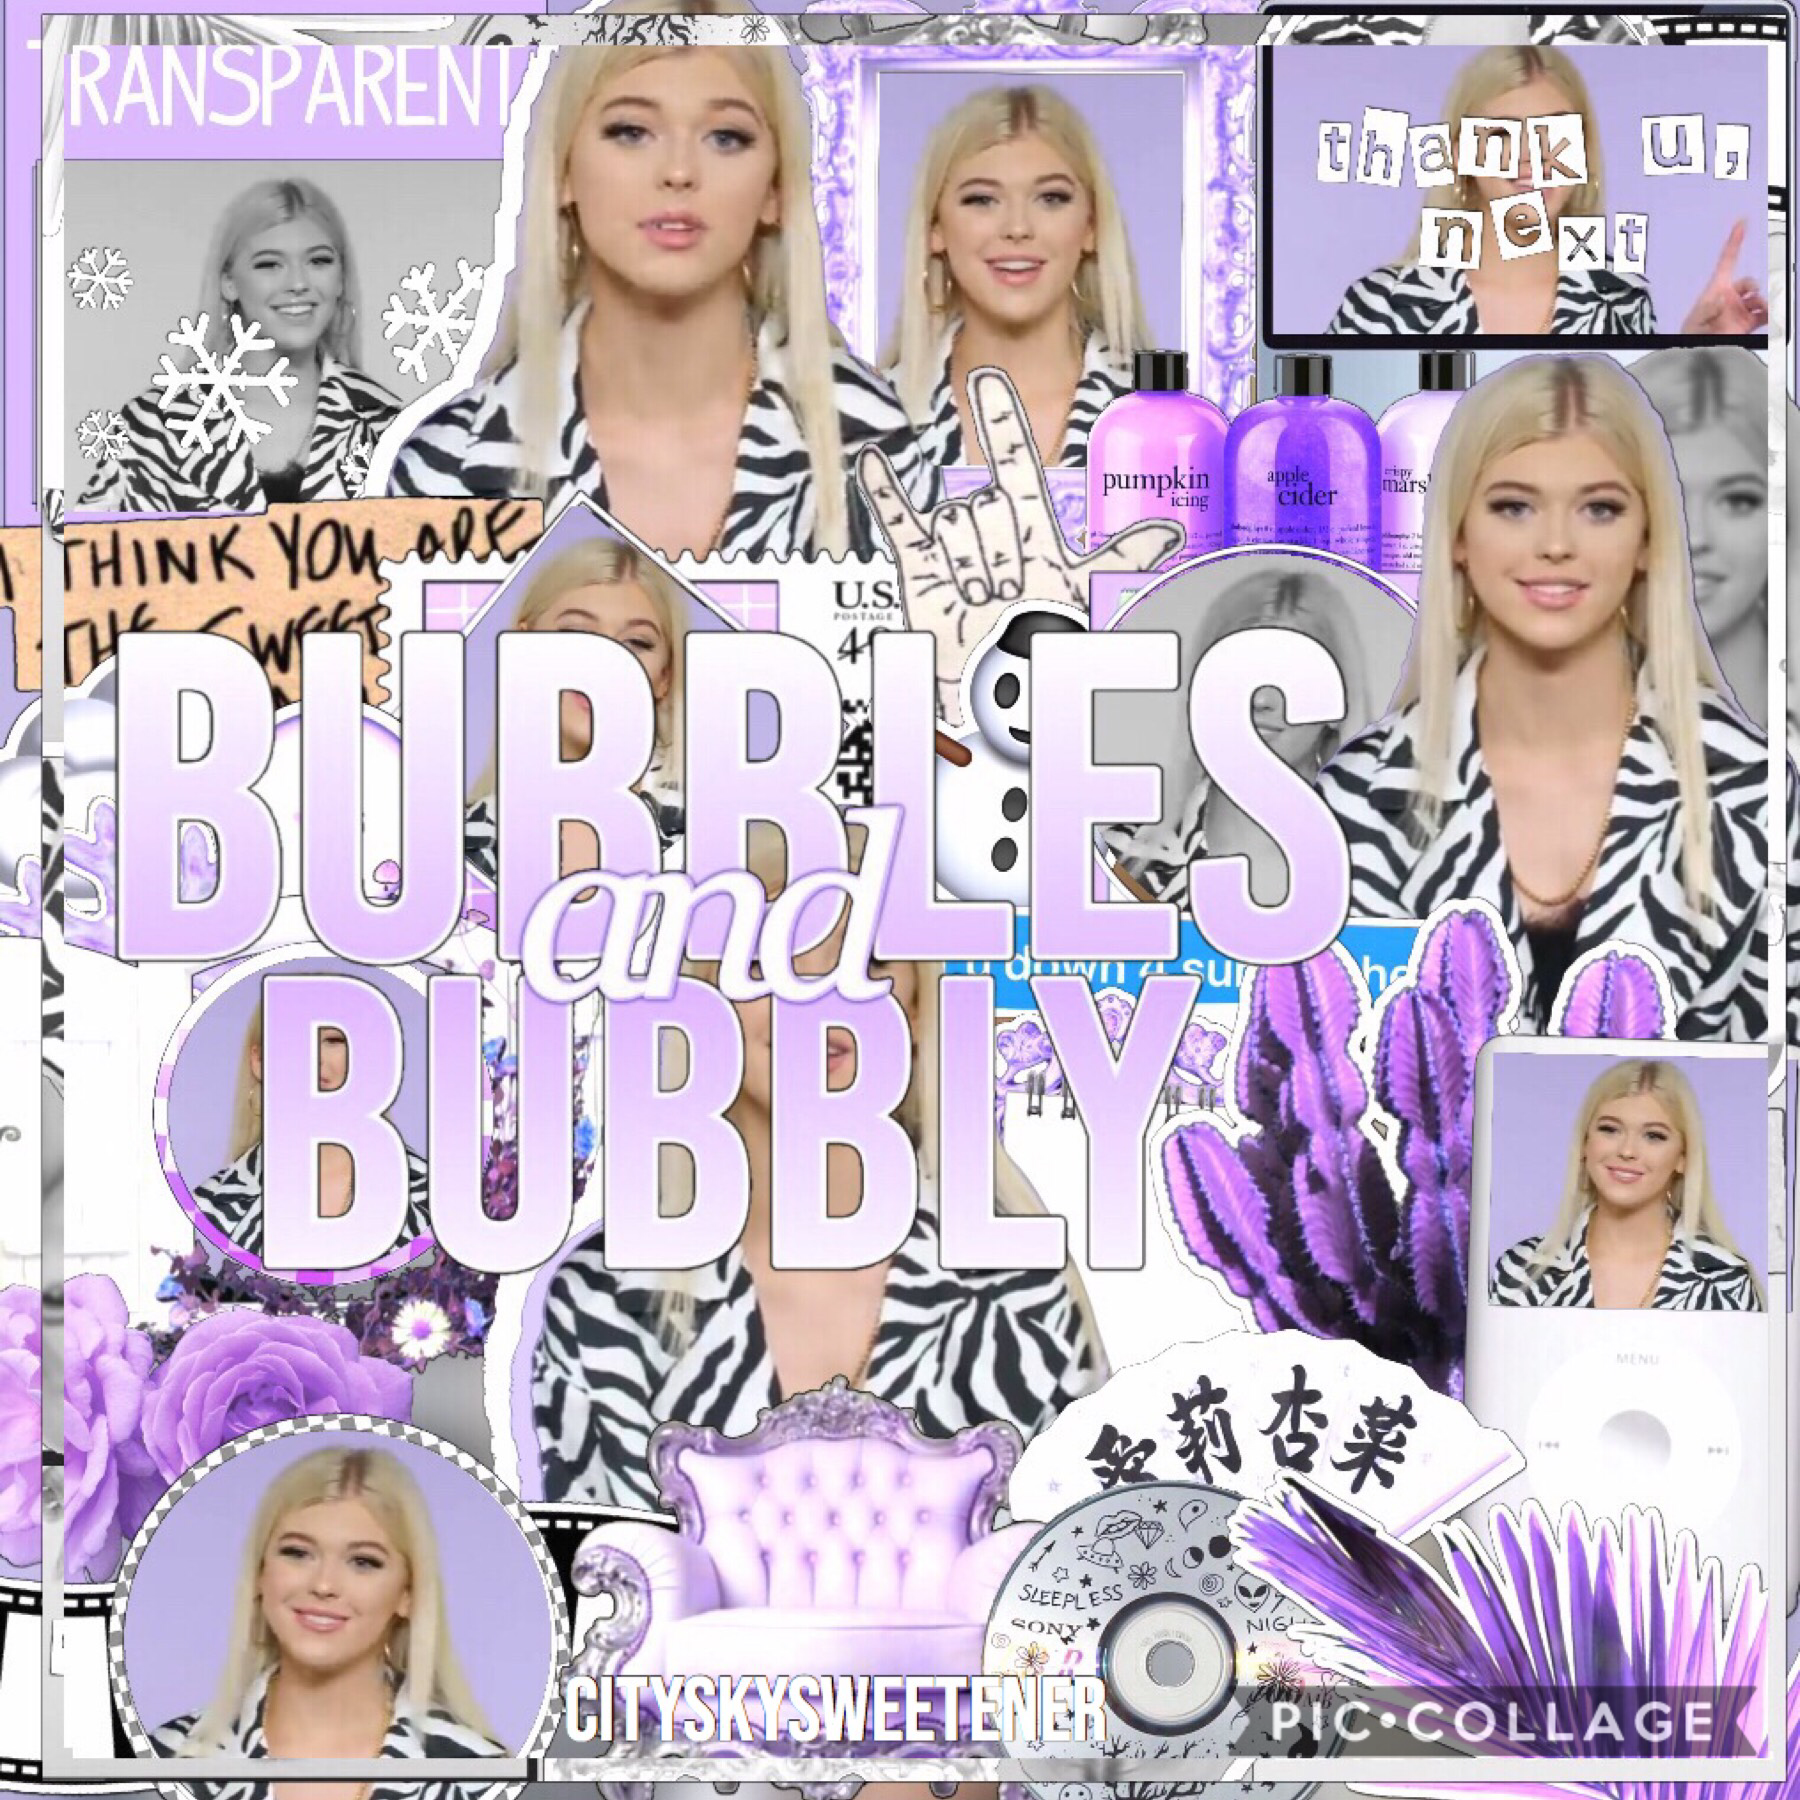 Hello!!💞I'm finally back w a new edit (well not really but it got deleted and I wanted to change the text😂😂) anyways check remixes❤️ily babies